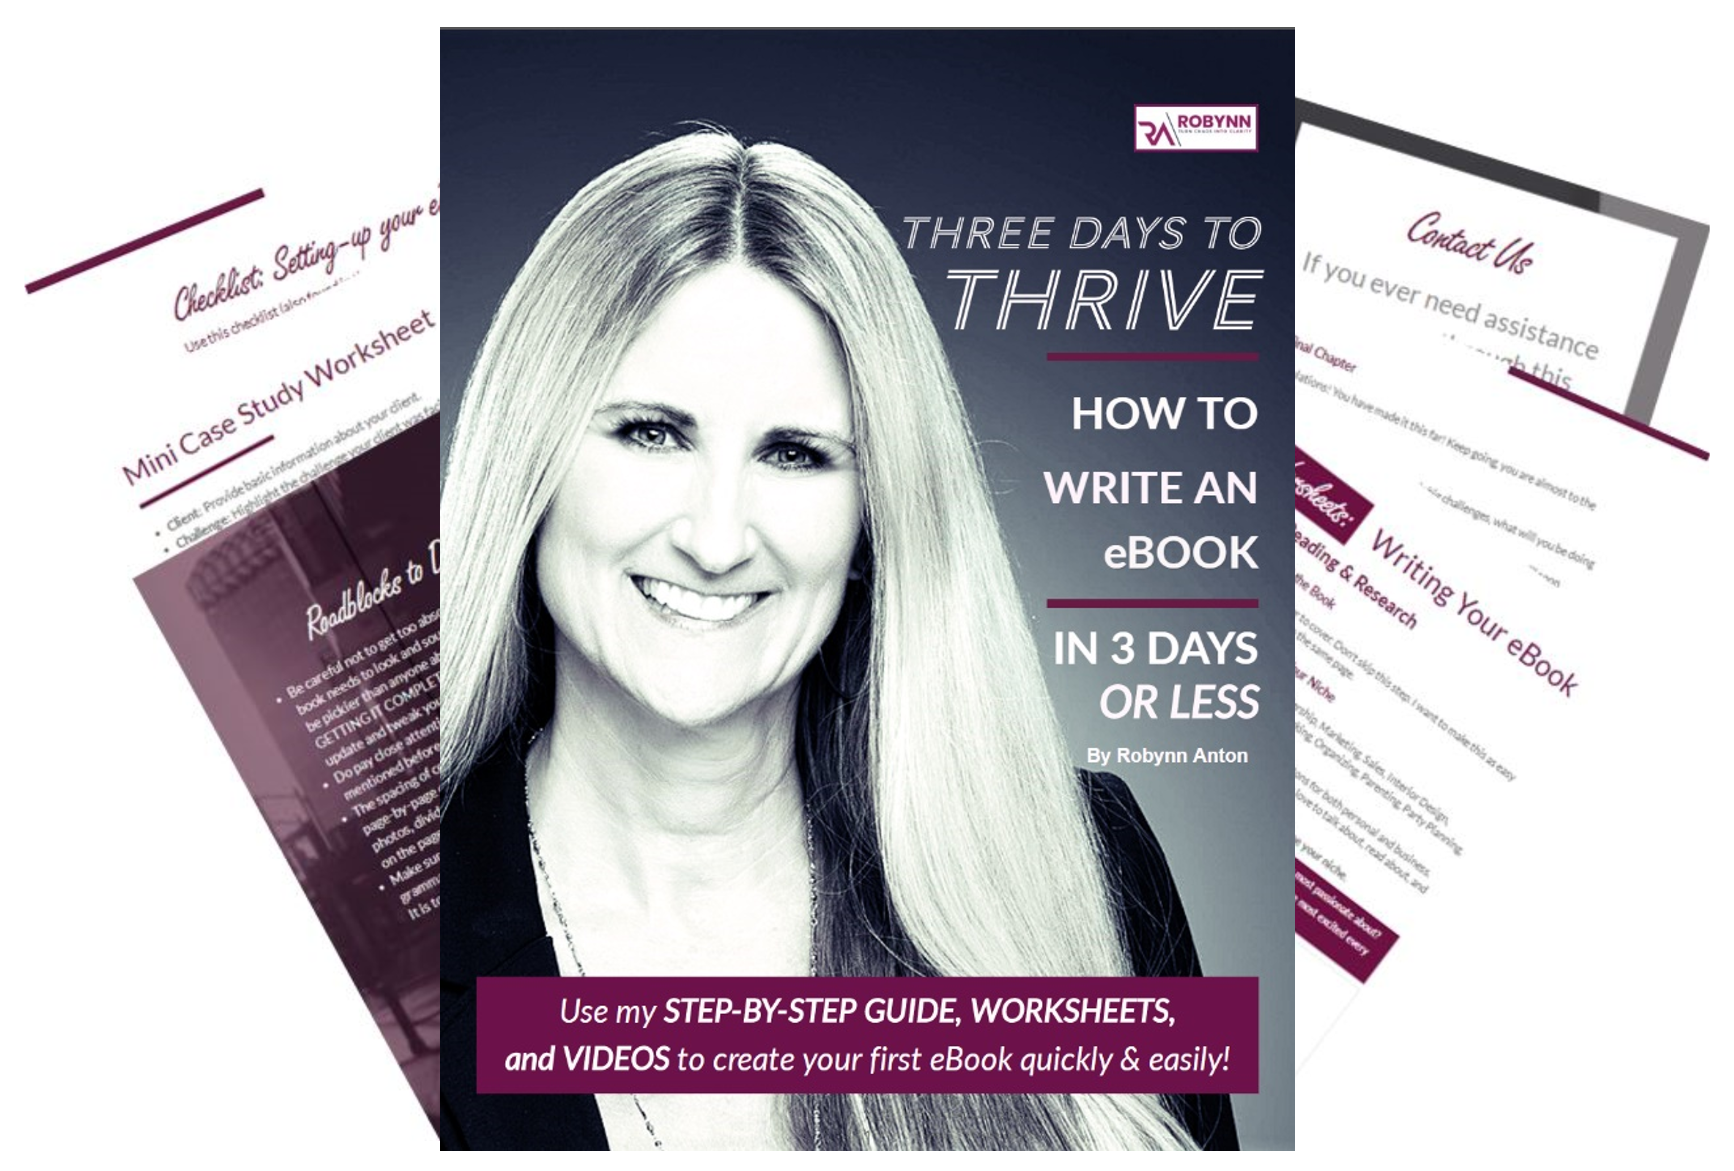 Book flare THRIVE